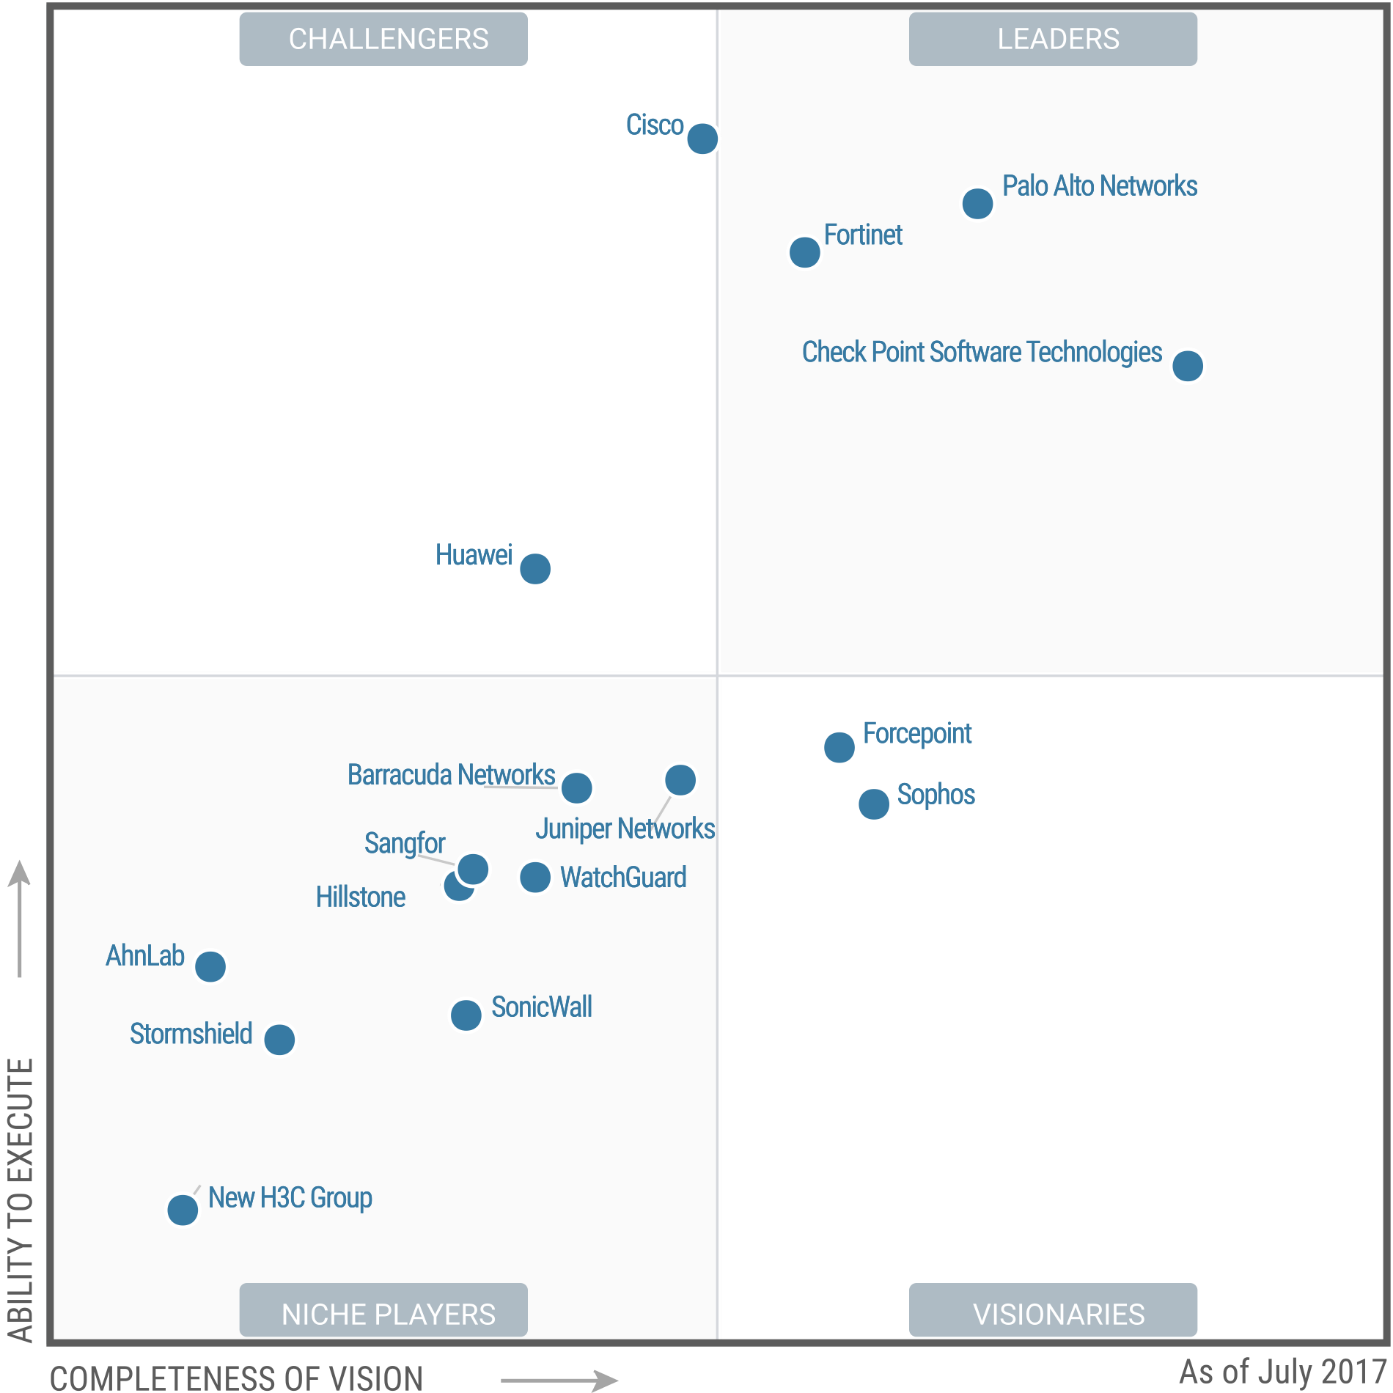 Magic Quadrant for (Enterprise) Network Firewalls 2017 (G00310171)